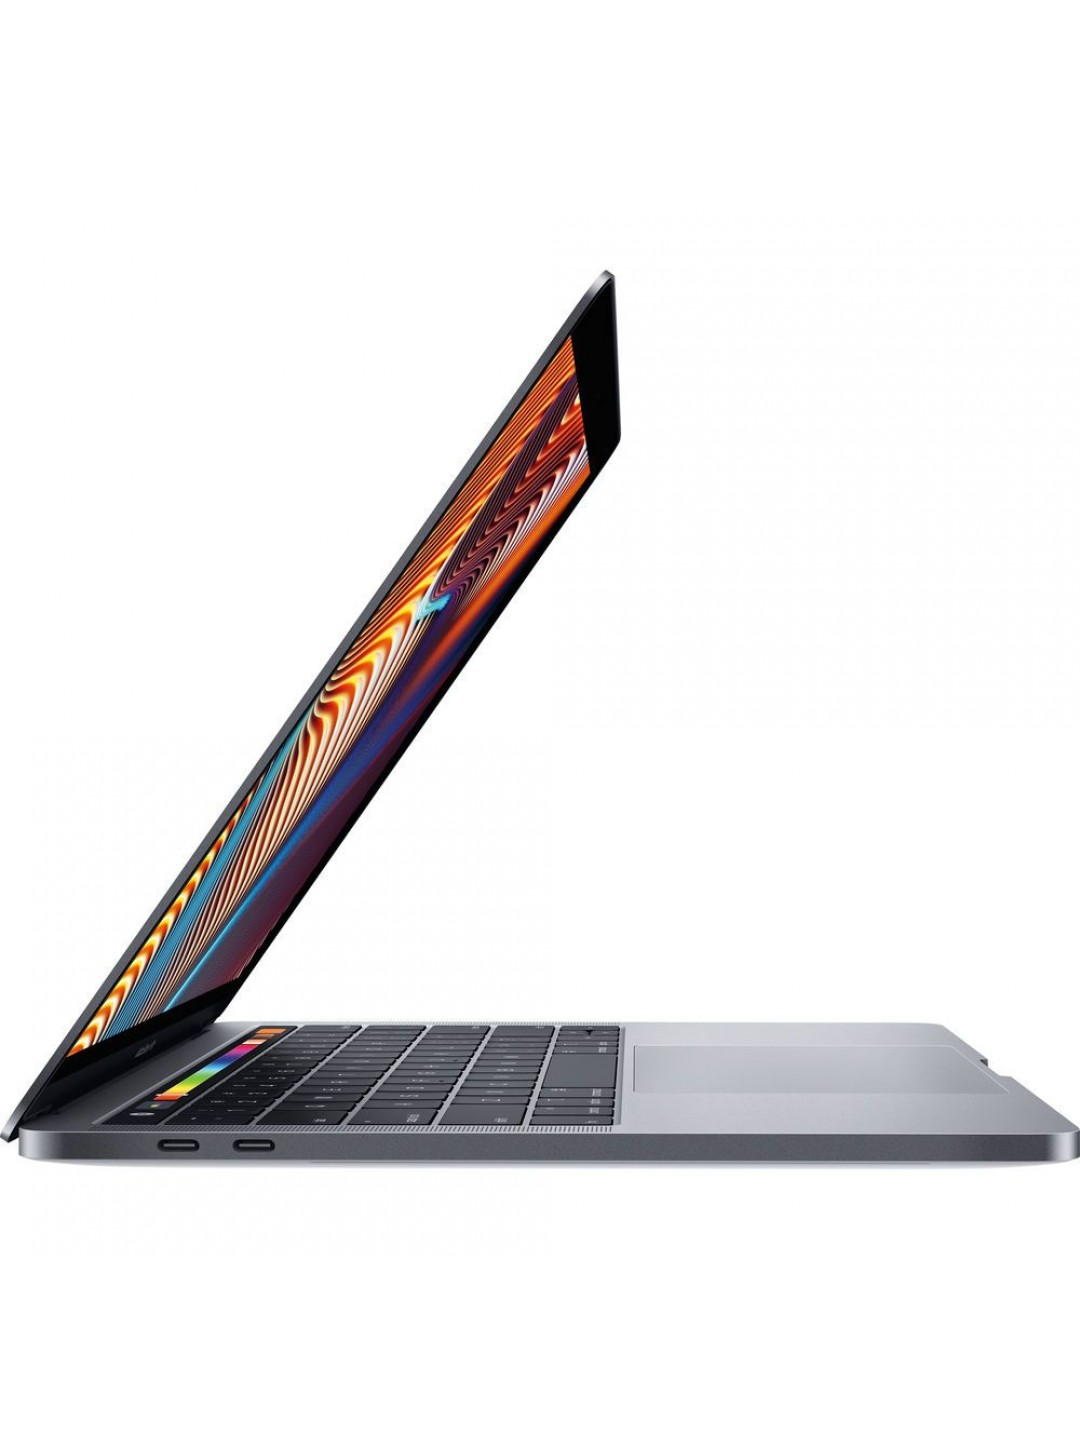 Laptop Apple Macbook Pro Touch Bar 2018 MR9R2 13.3 inch/2.3GHz quad-core Intel Core i5/8GB/512GB/Intel Iris Plus Graphics 655